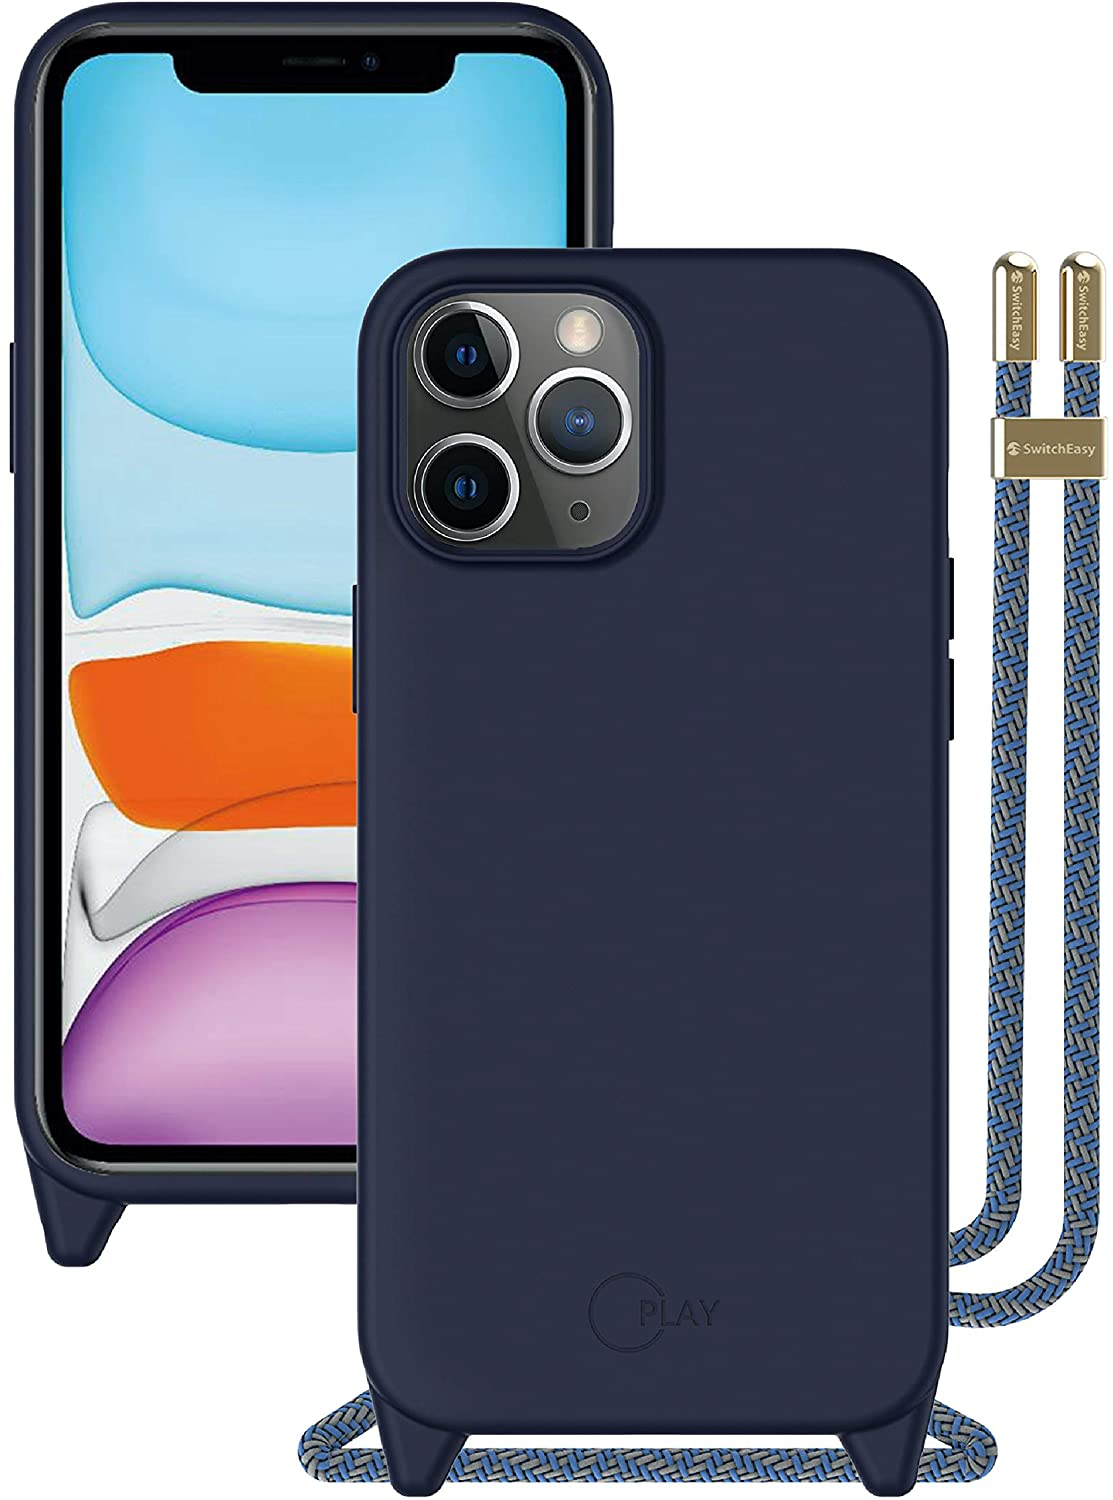 SwitchEasy iPhone 12 Pro Max Case - Play, Liquid Silicone Case with Crossbody Lanyard, Adjustable Fashion Neck Strap, Full-Body Shockproof Protection, Screen & Camera Cover - Classic Blue